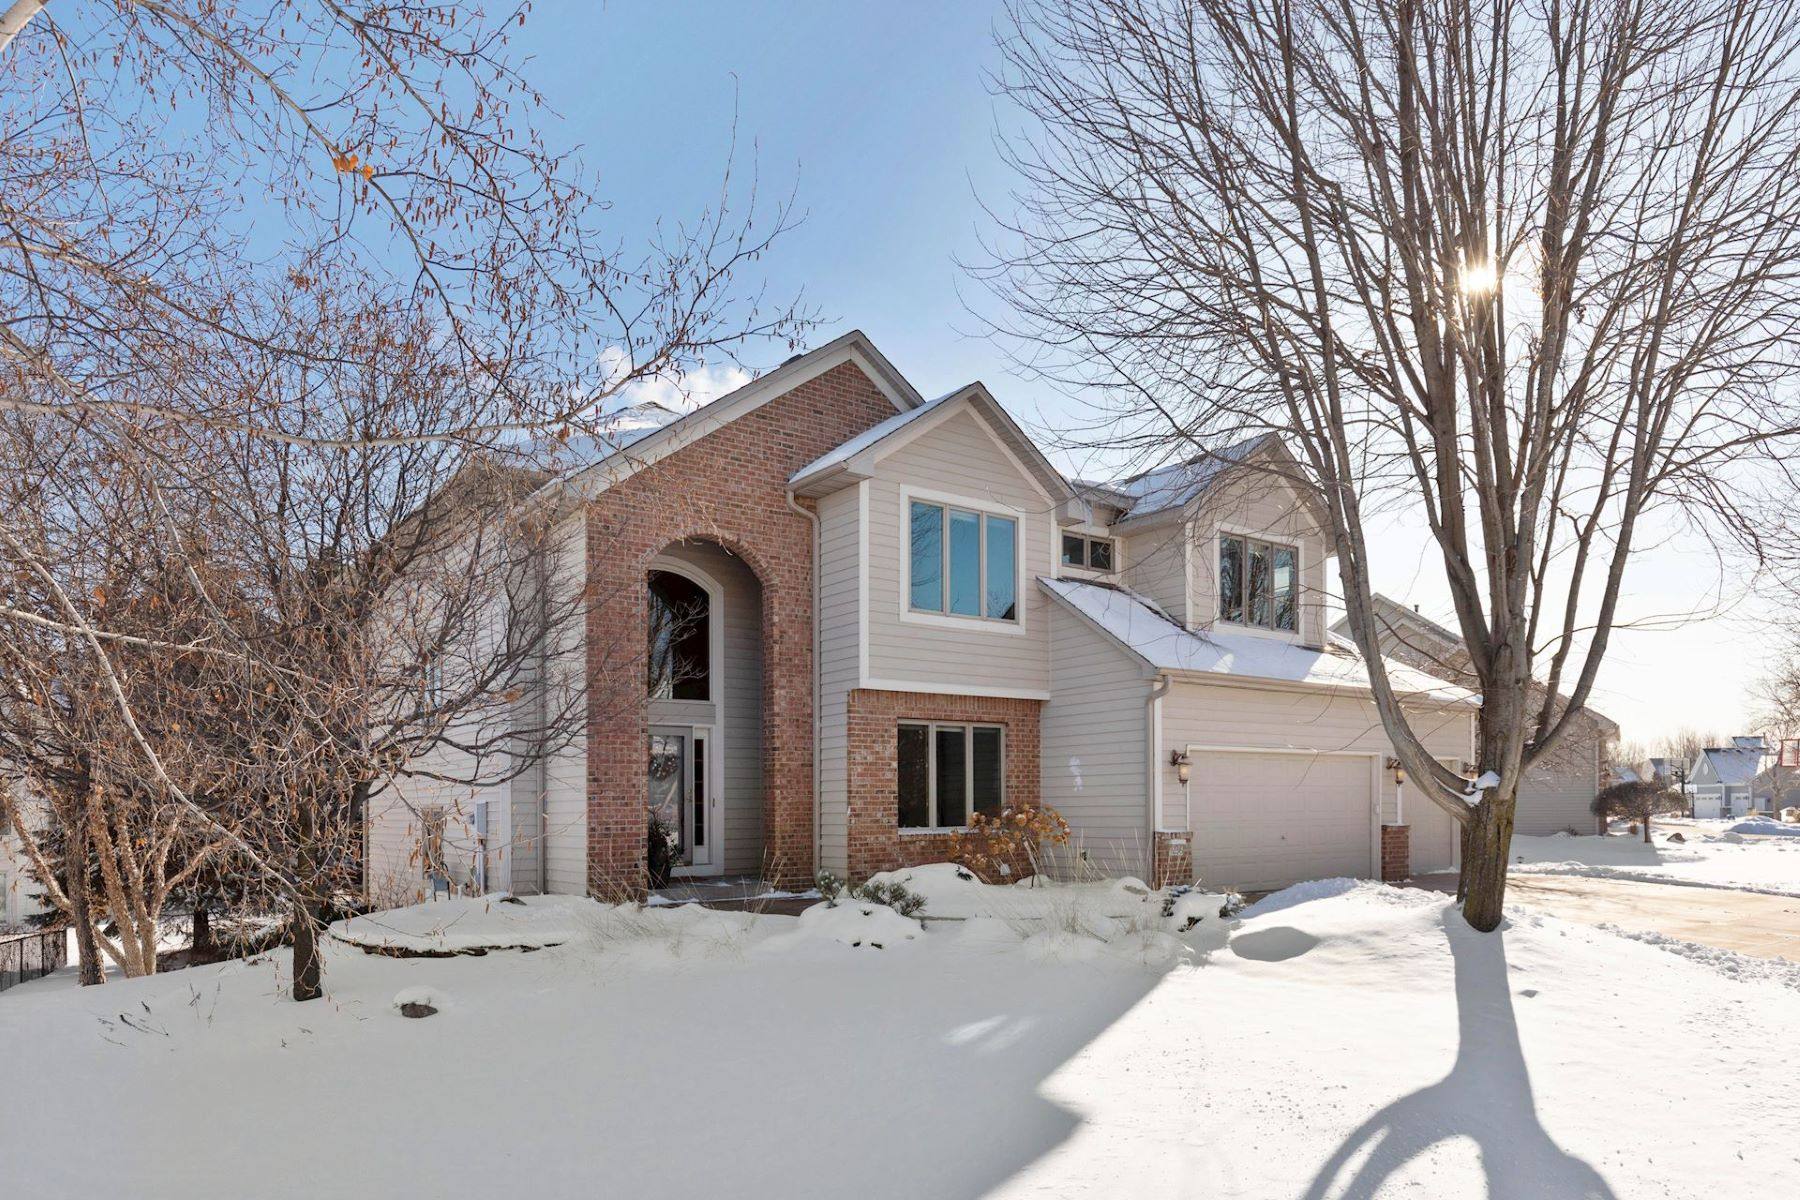 Single Family Homes for Sale at Turnkey Property Located in a Convenient Maple Grove Location 9236 Tewsbury Gate Maple Grove, Minnesota 55311 United States